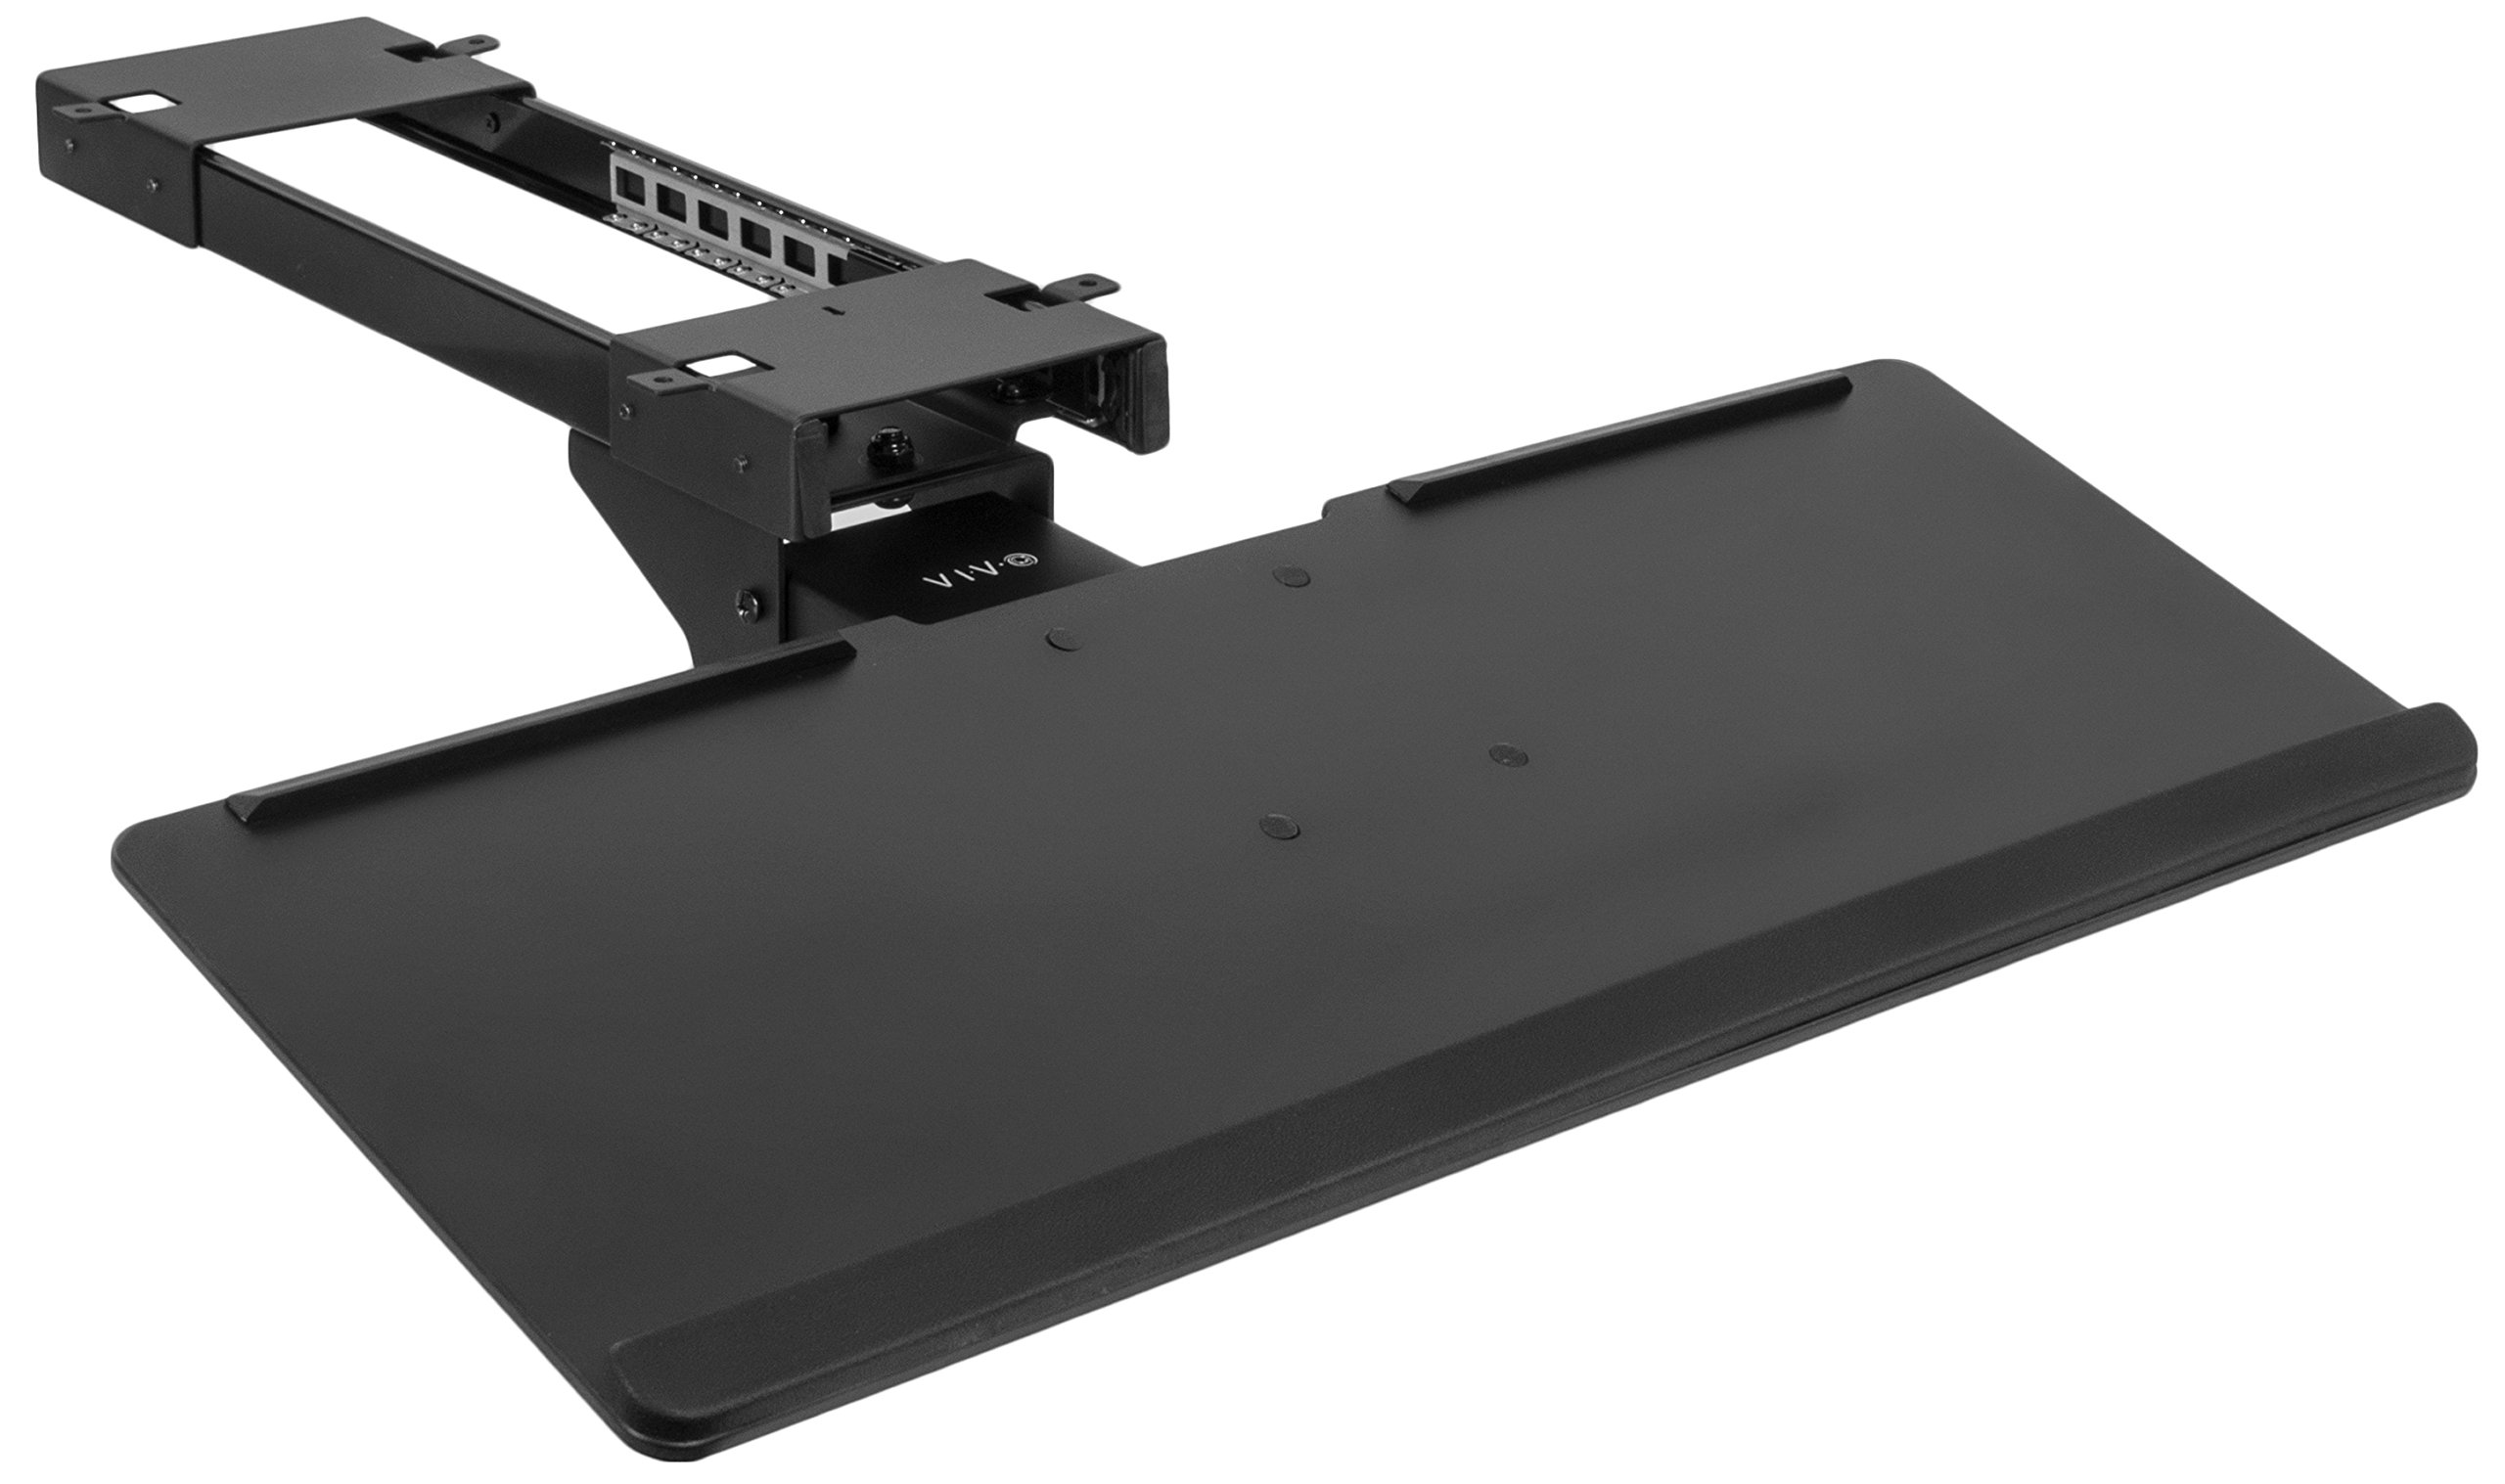 VIVO Black Adjustable Computer Keyboard and Mouse Platform Tray Deluxe Smooth Rolling Track Under Table Desk Mount (MOUNT-KB04C) by VIVO